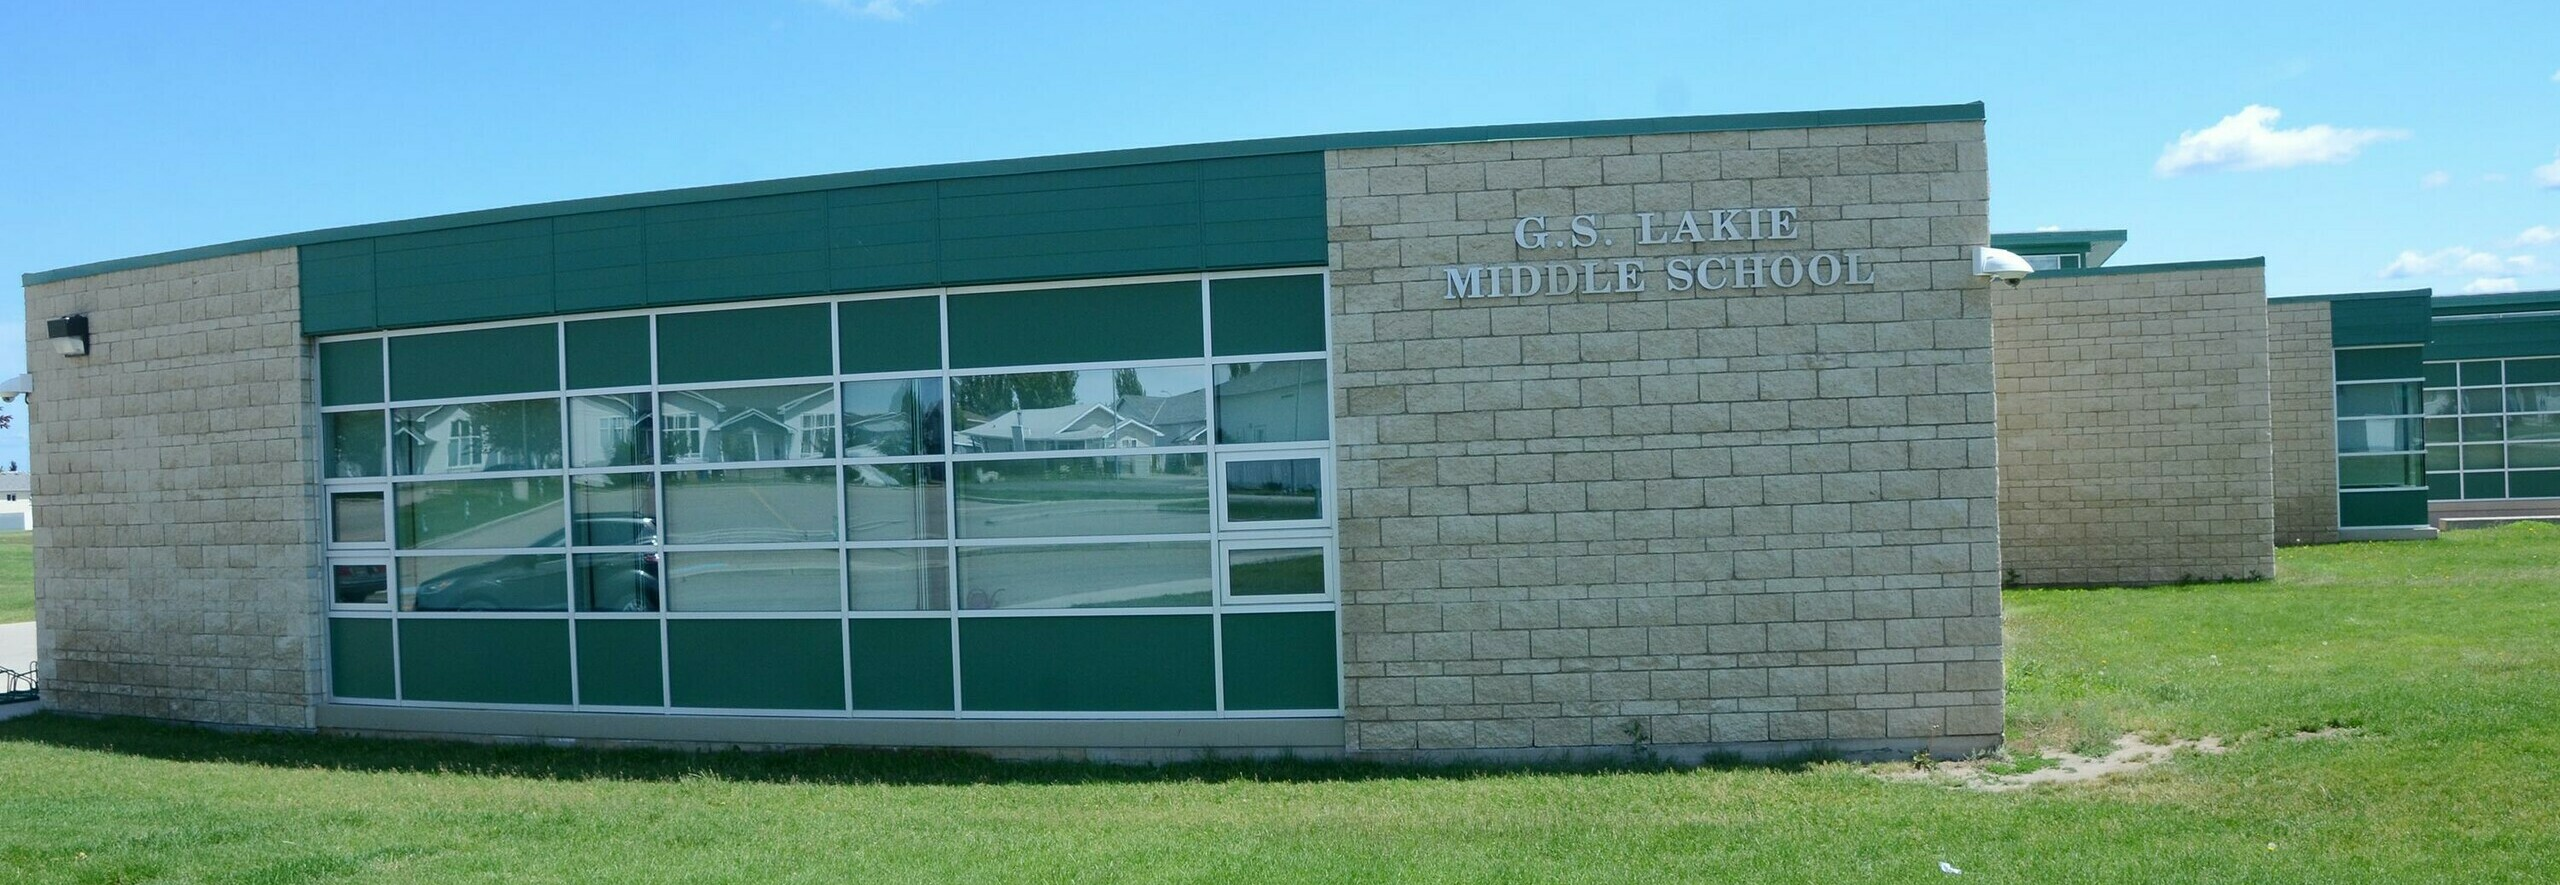 G.S. Lakie Middle School Banner Photo